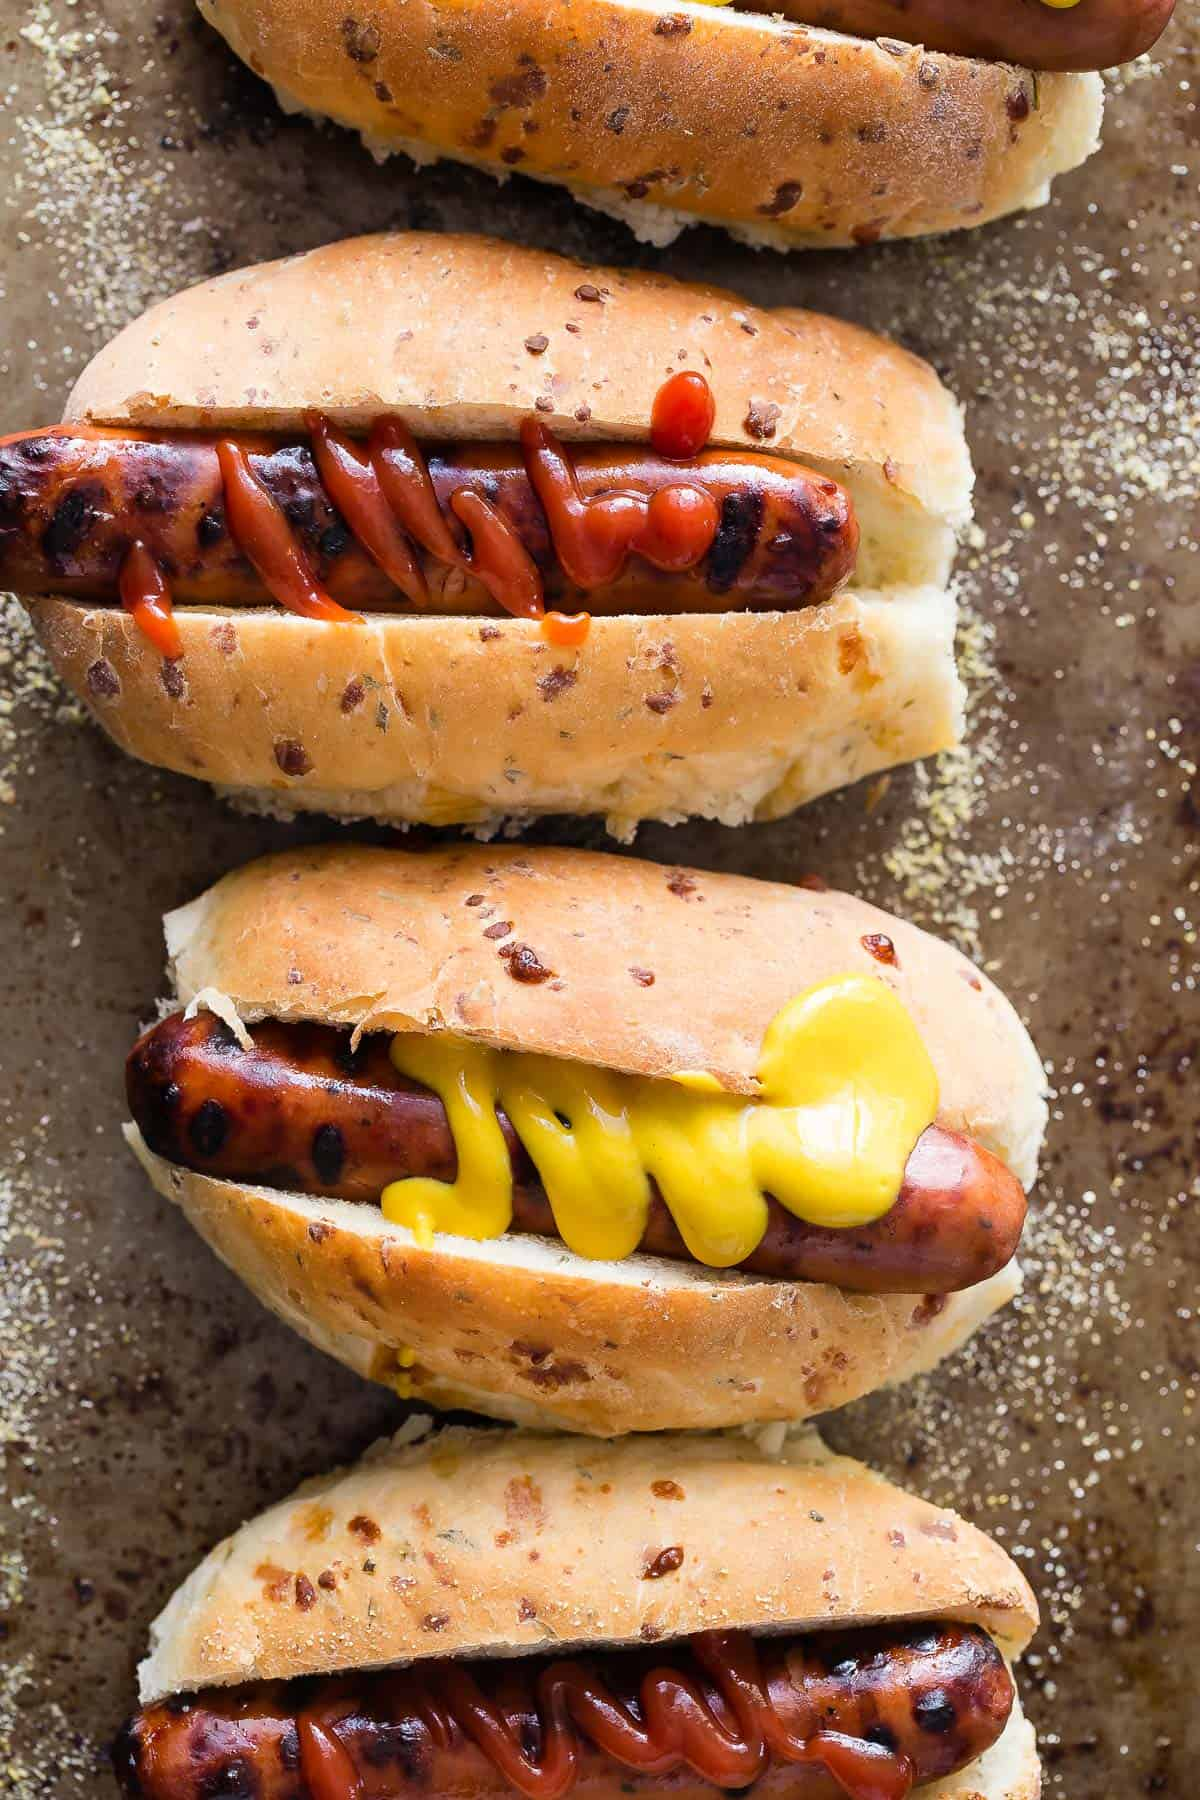 Soft homemade hot dog buns with cheddar and fresh rosemary.